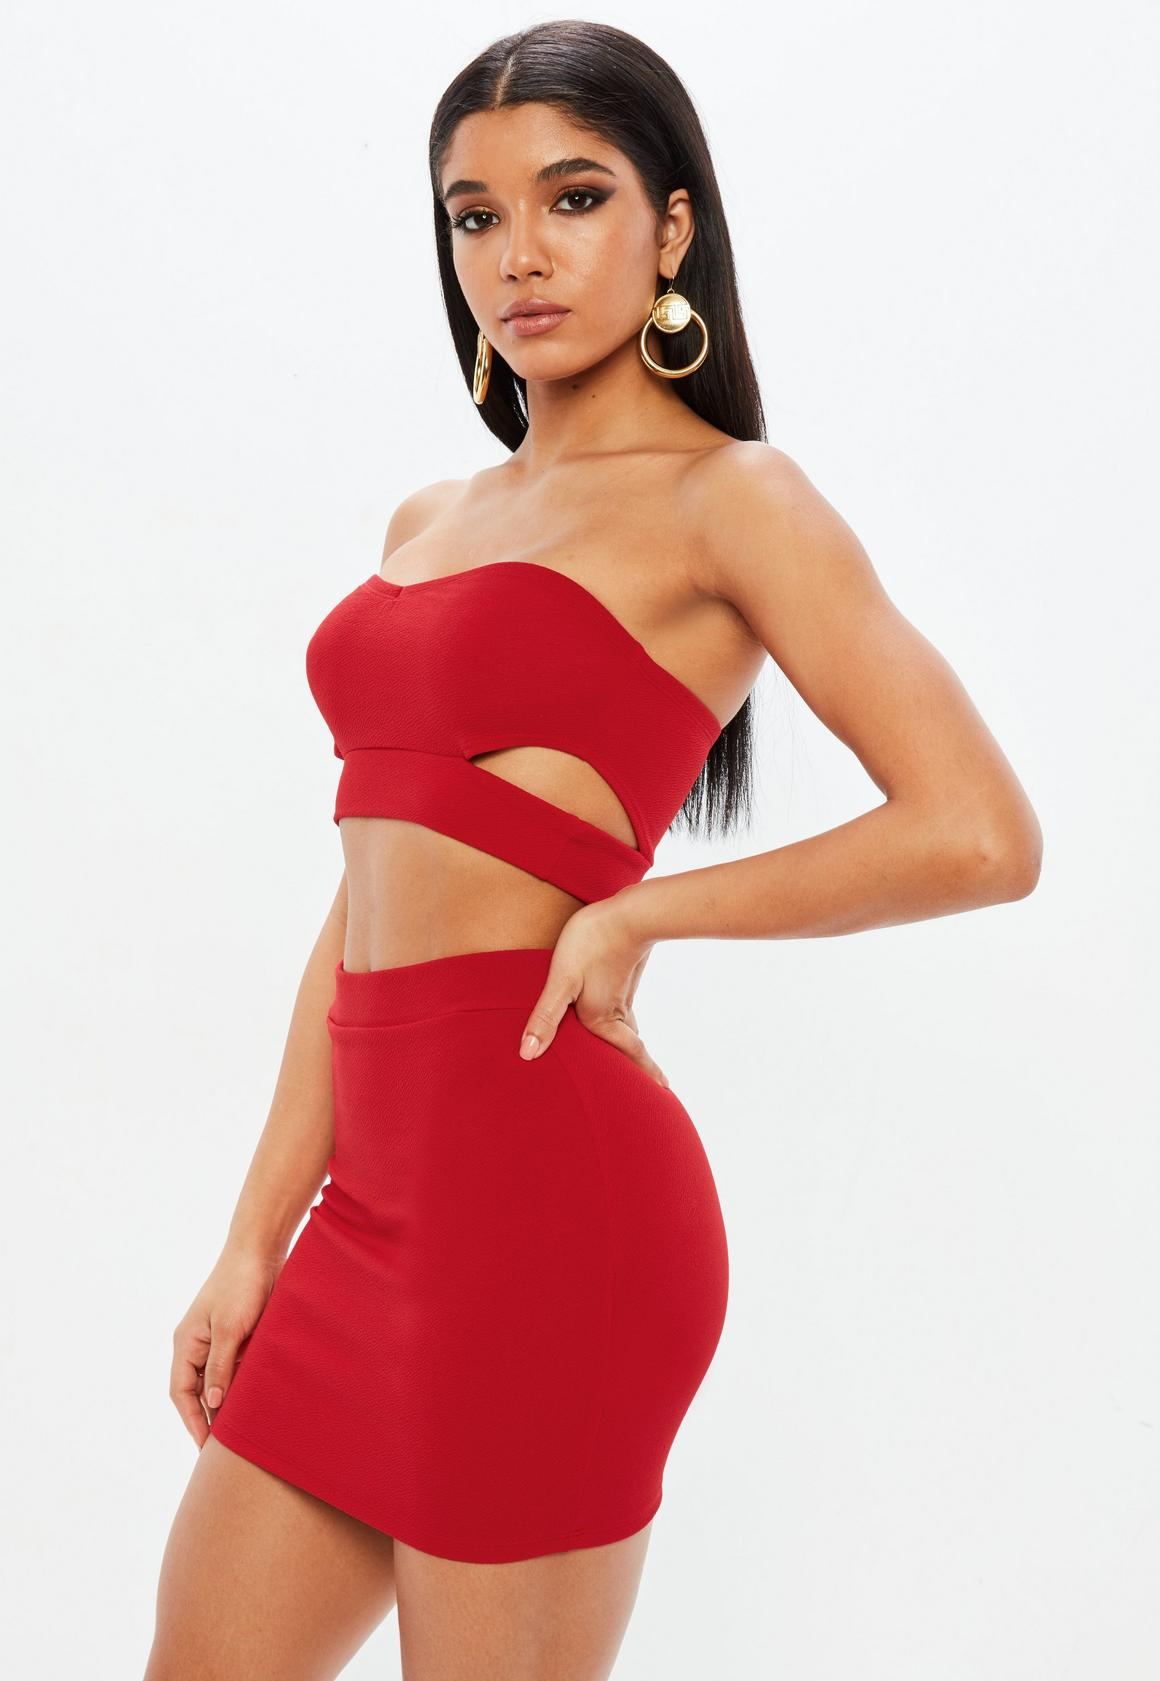 neueste 4b9ac 96d5e Petite Rotes Bandeau Crop-Top mit Cut-Out